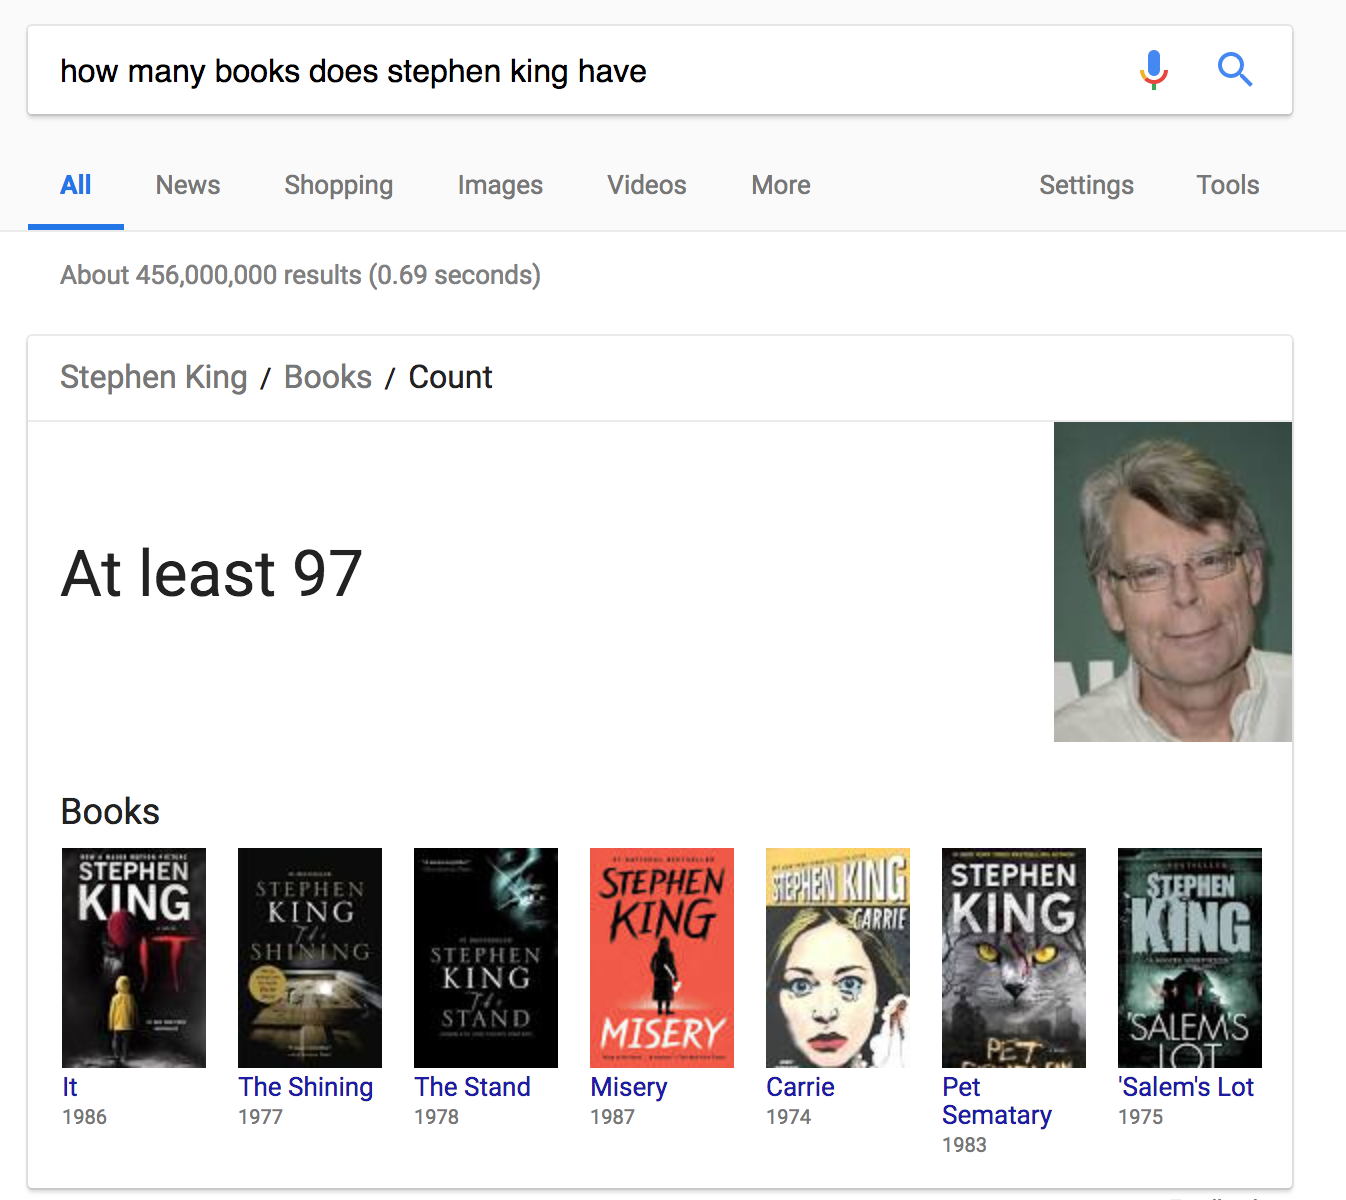 a beginner's guide to stephen king - the stephen king book list